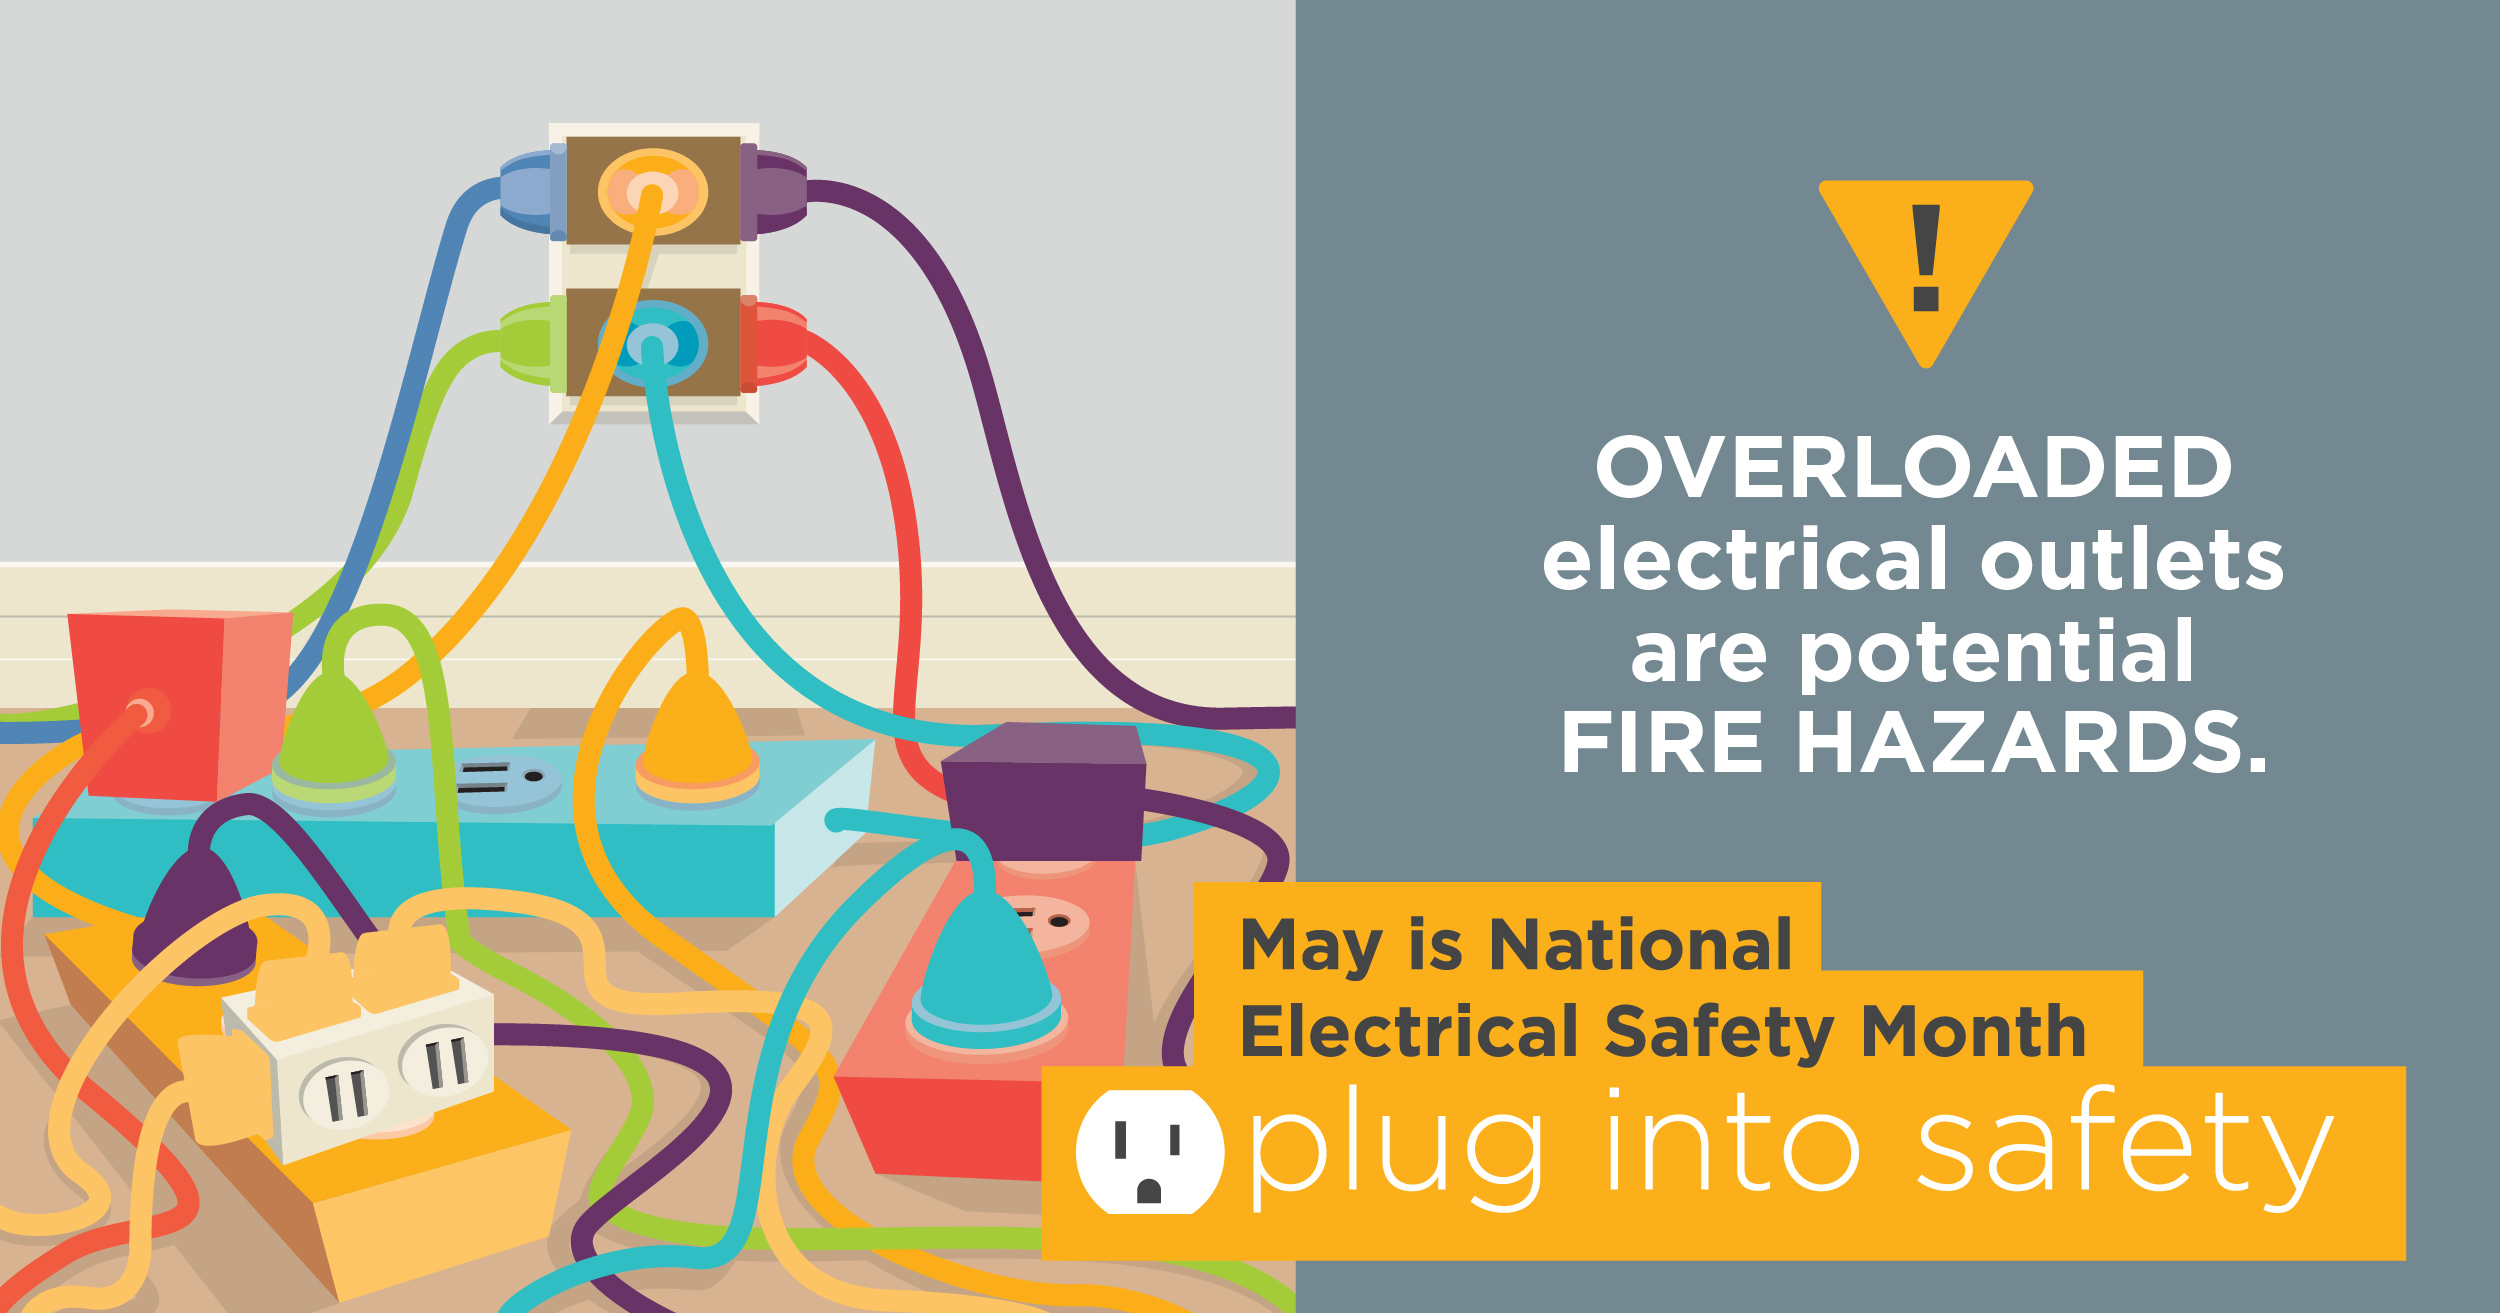 May is electrical safety month. Graphic says overloaded electrical outlets are potential fire hazards - Plug into safety